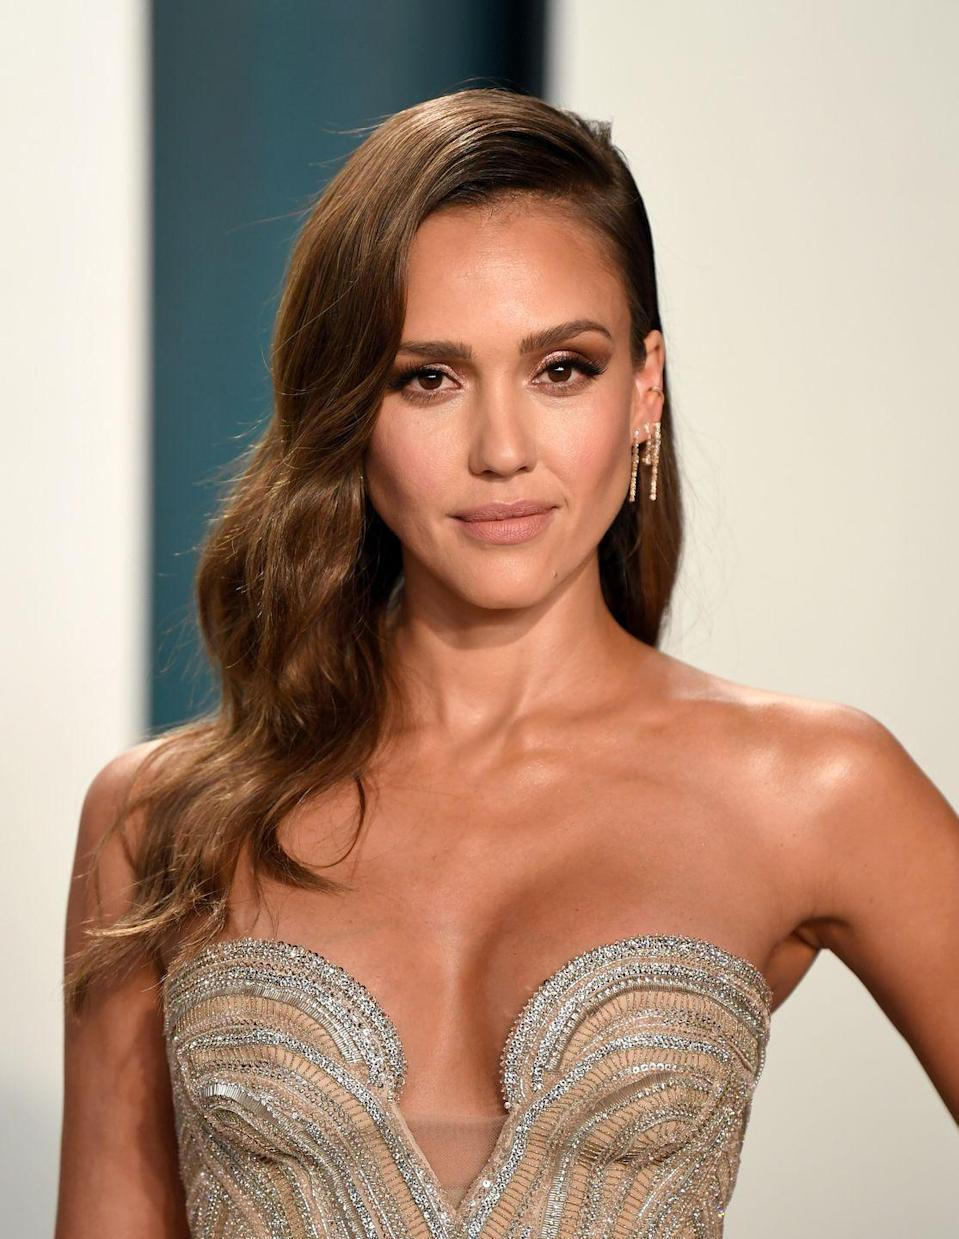 """<p>Sleek, timeless chestnut waves are perfect for any occasion. Try a deep side part, like <strong>Jessica Alba</strong>.</p><p><a class=""""link rapid-noclick-resp"""" href=""""https://go.redirectingat.com?id=74968X1596630&url=https%3A%2F%2Fwww.dermstore.com%2Fproduct_Carbon%2BTail%2BComb_59521.htm&sref=https%3A%2F%2Fwww.goodhousekeeping.com%2Fbeauty%2Fhair%2Fg34691983%2Fchestnut-hair-color-ideas%2F"""" rel=""""nofollow noopener"""" target=""""_blank"""" data-ylk=""""slk:SHOP PARTING COMB"""">SHOP PARTING COMB</a></p>"""